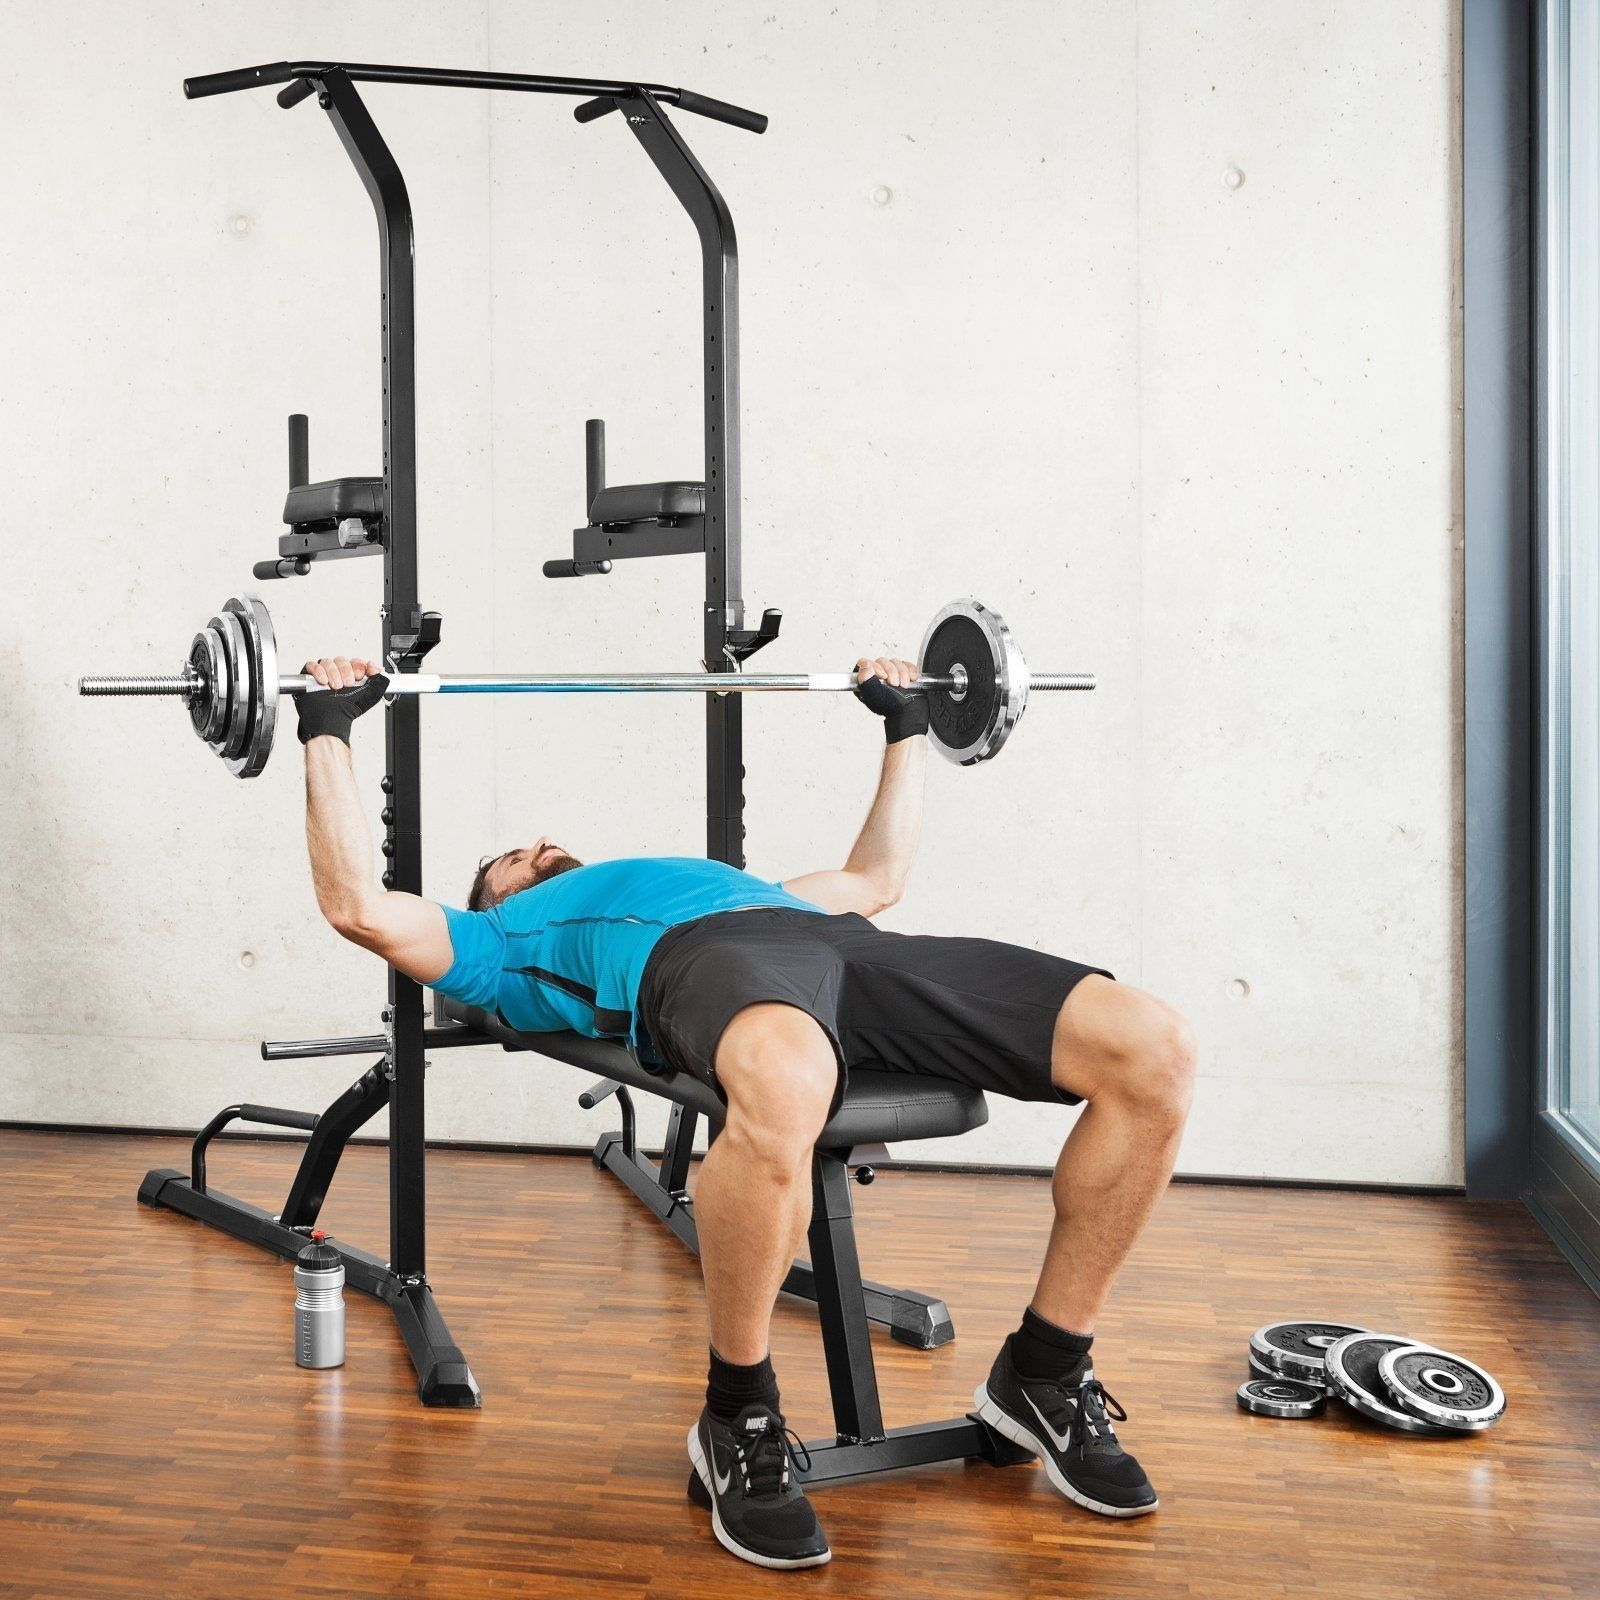 powerrack bench commercial catalog squat product load view white s wht power id rack cage working light category press